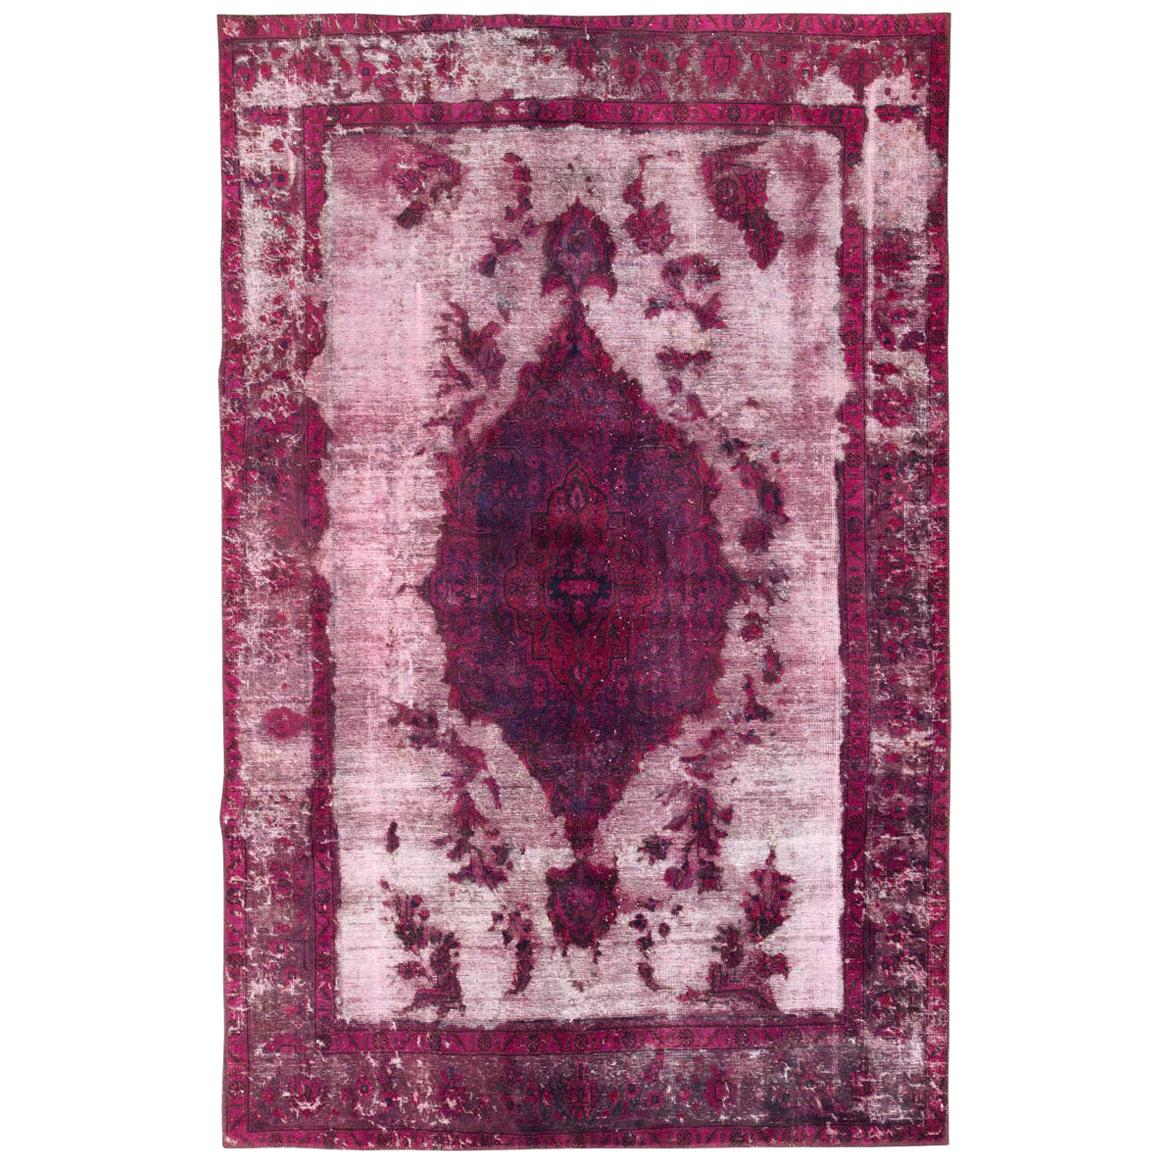 21st Century Contemporary Overdyed and Distressed Persian Accent Rug in Fuchsia